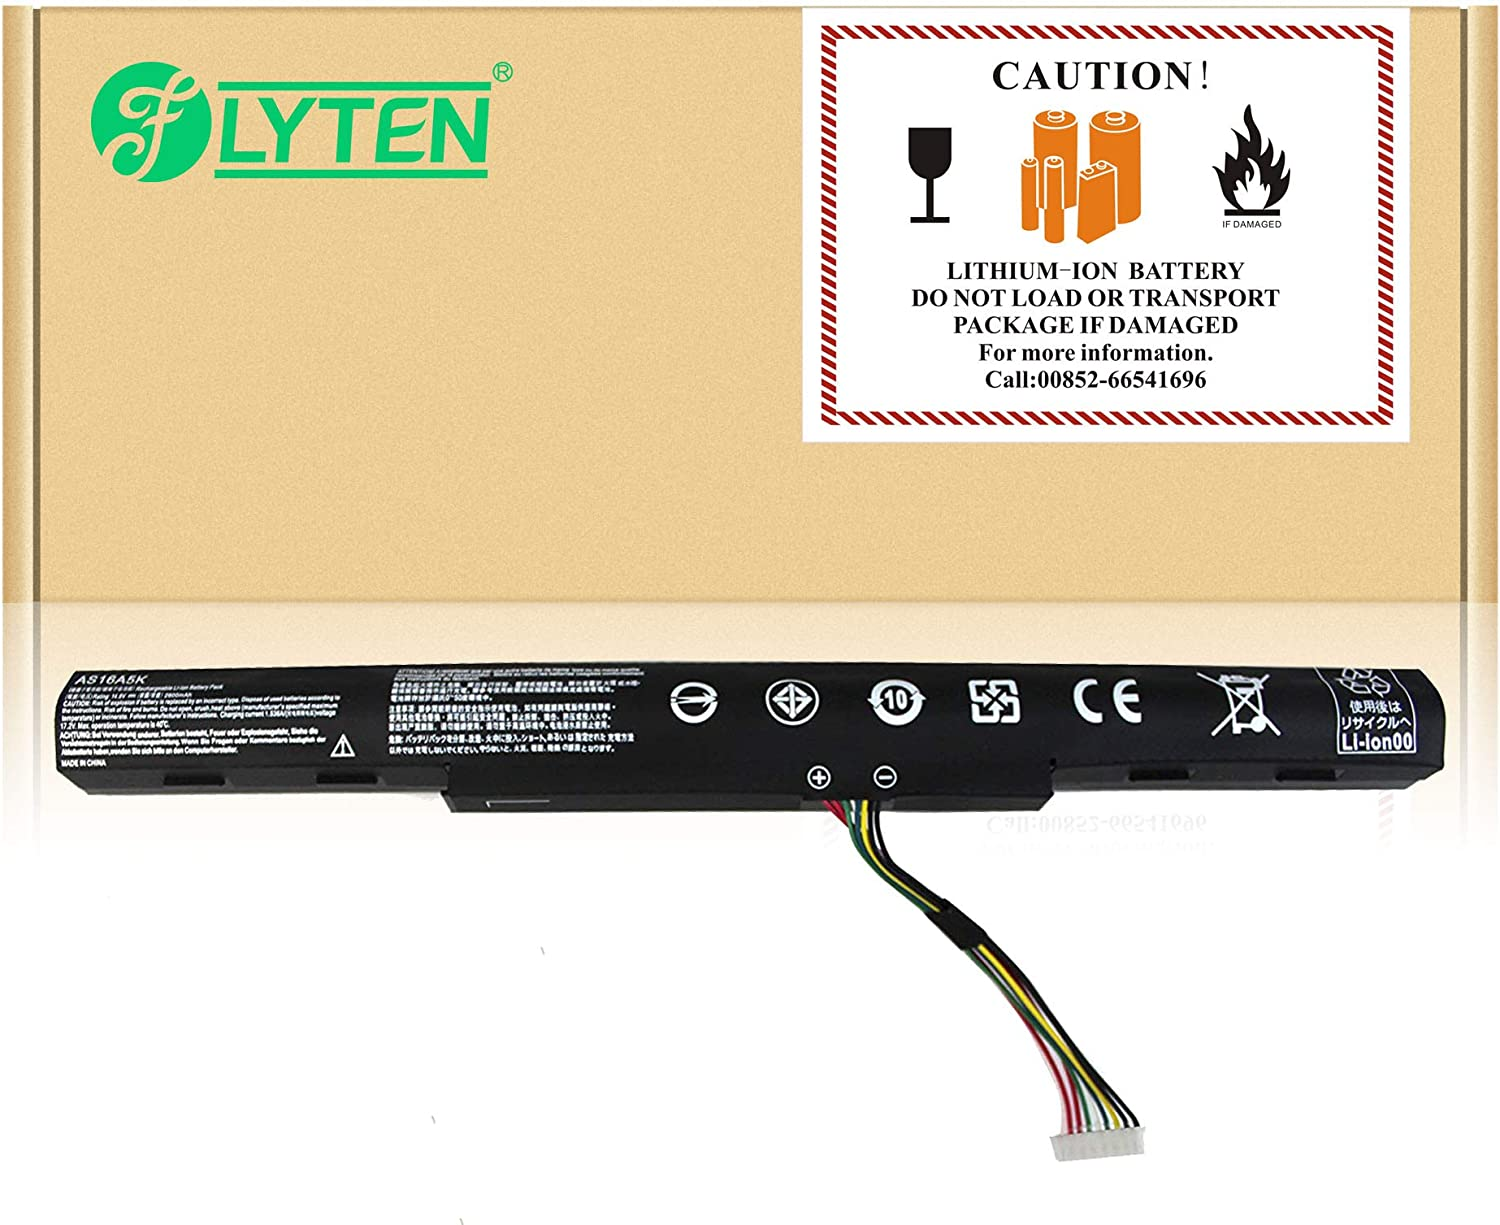 FLYTEN New AS16A5K Battery For Acer Aspire E15 E5-475 E5-475G E5-523 E5-553 E5-576 E5-774G Series,Fit P/N AS16A7K AS16A8K E5-475-31A7 E5-475-32X8 E5-475-35CL 12 Months-Warranty